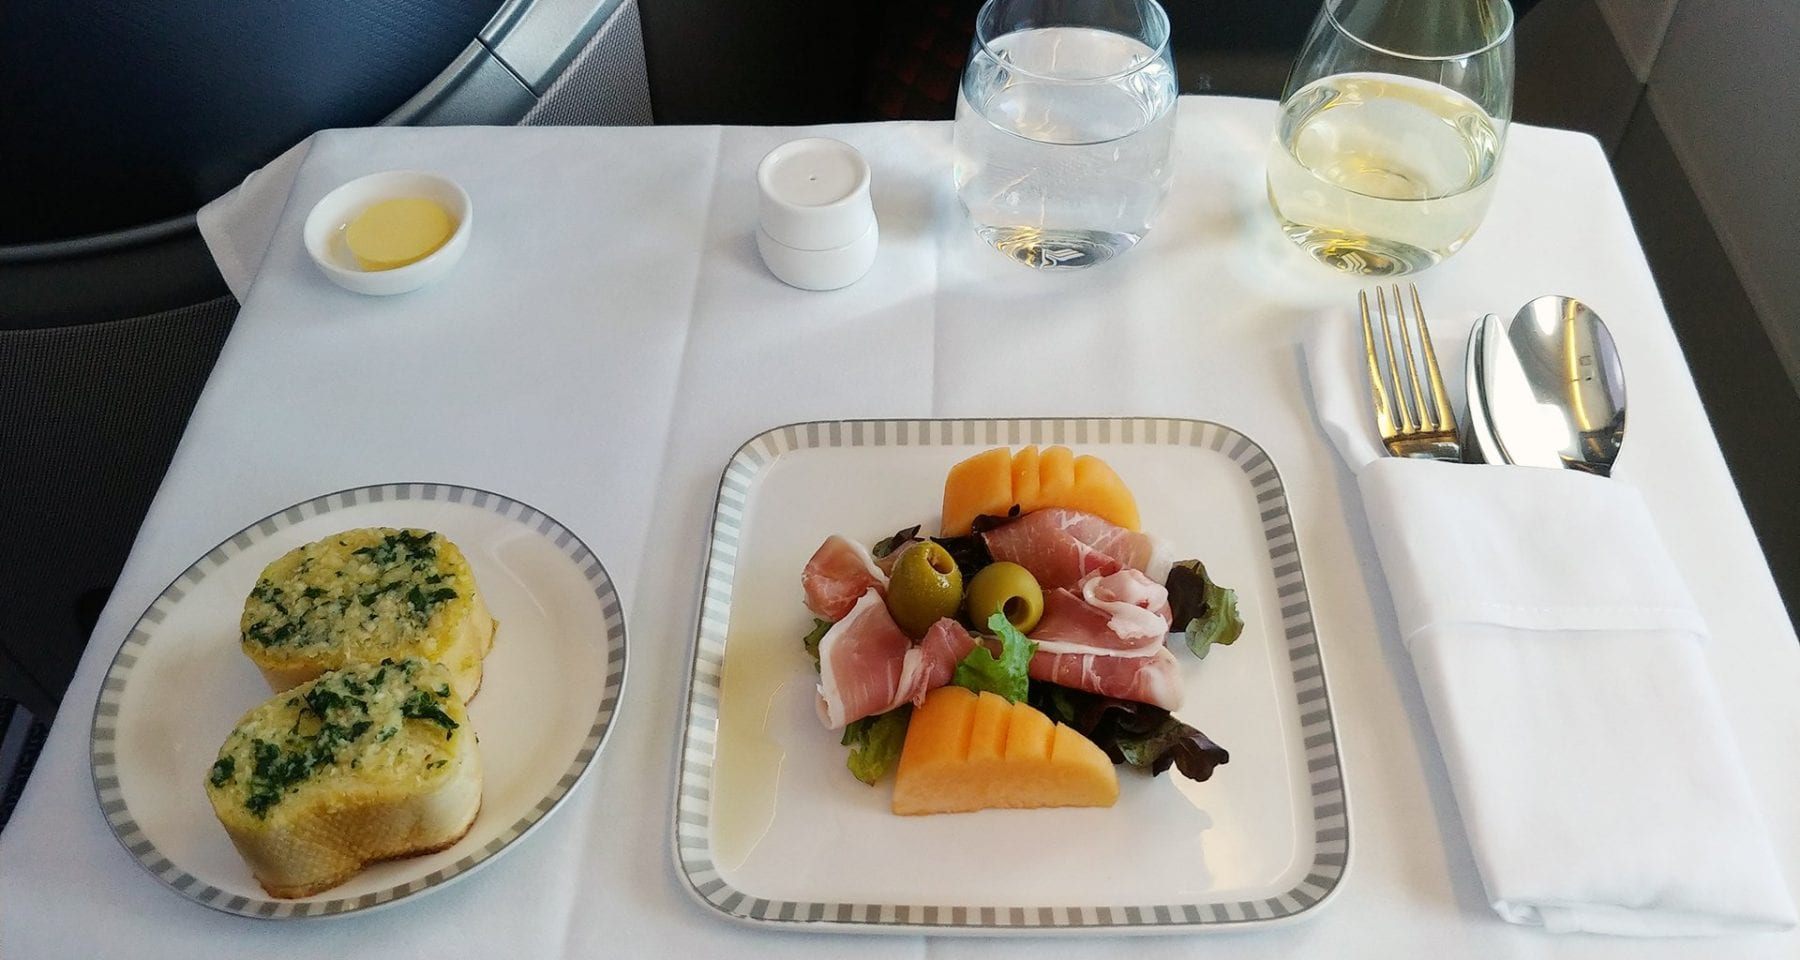 Singapore Airlines Entree Prosciutto e Melon Business Class